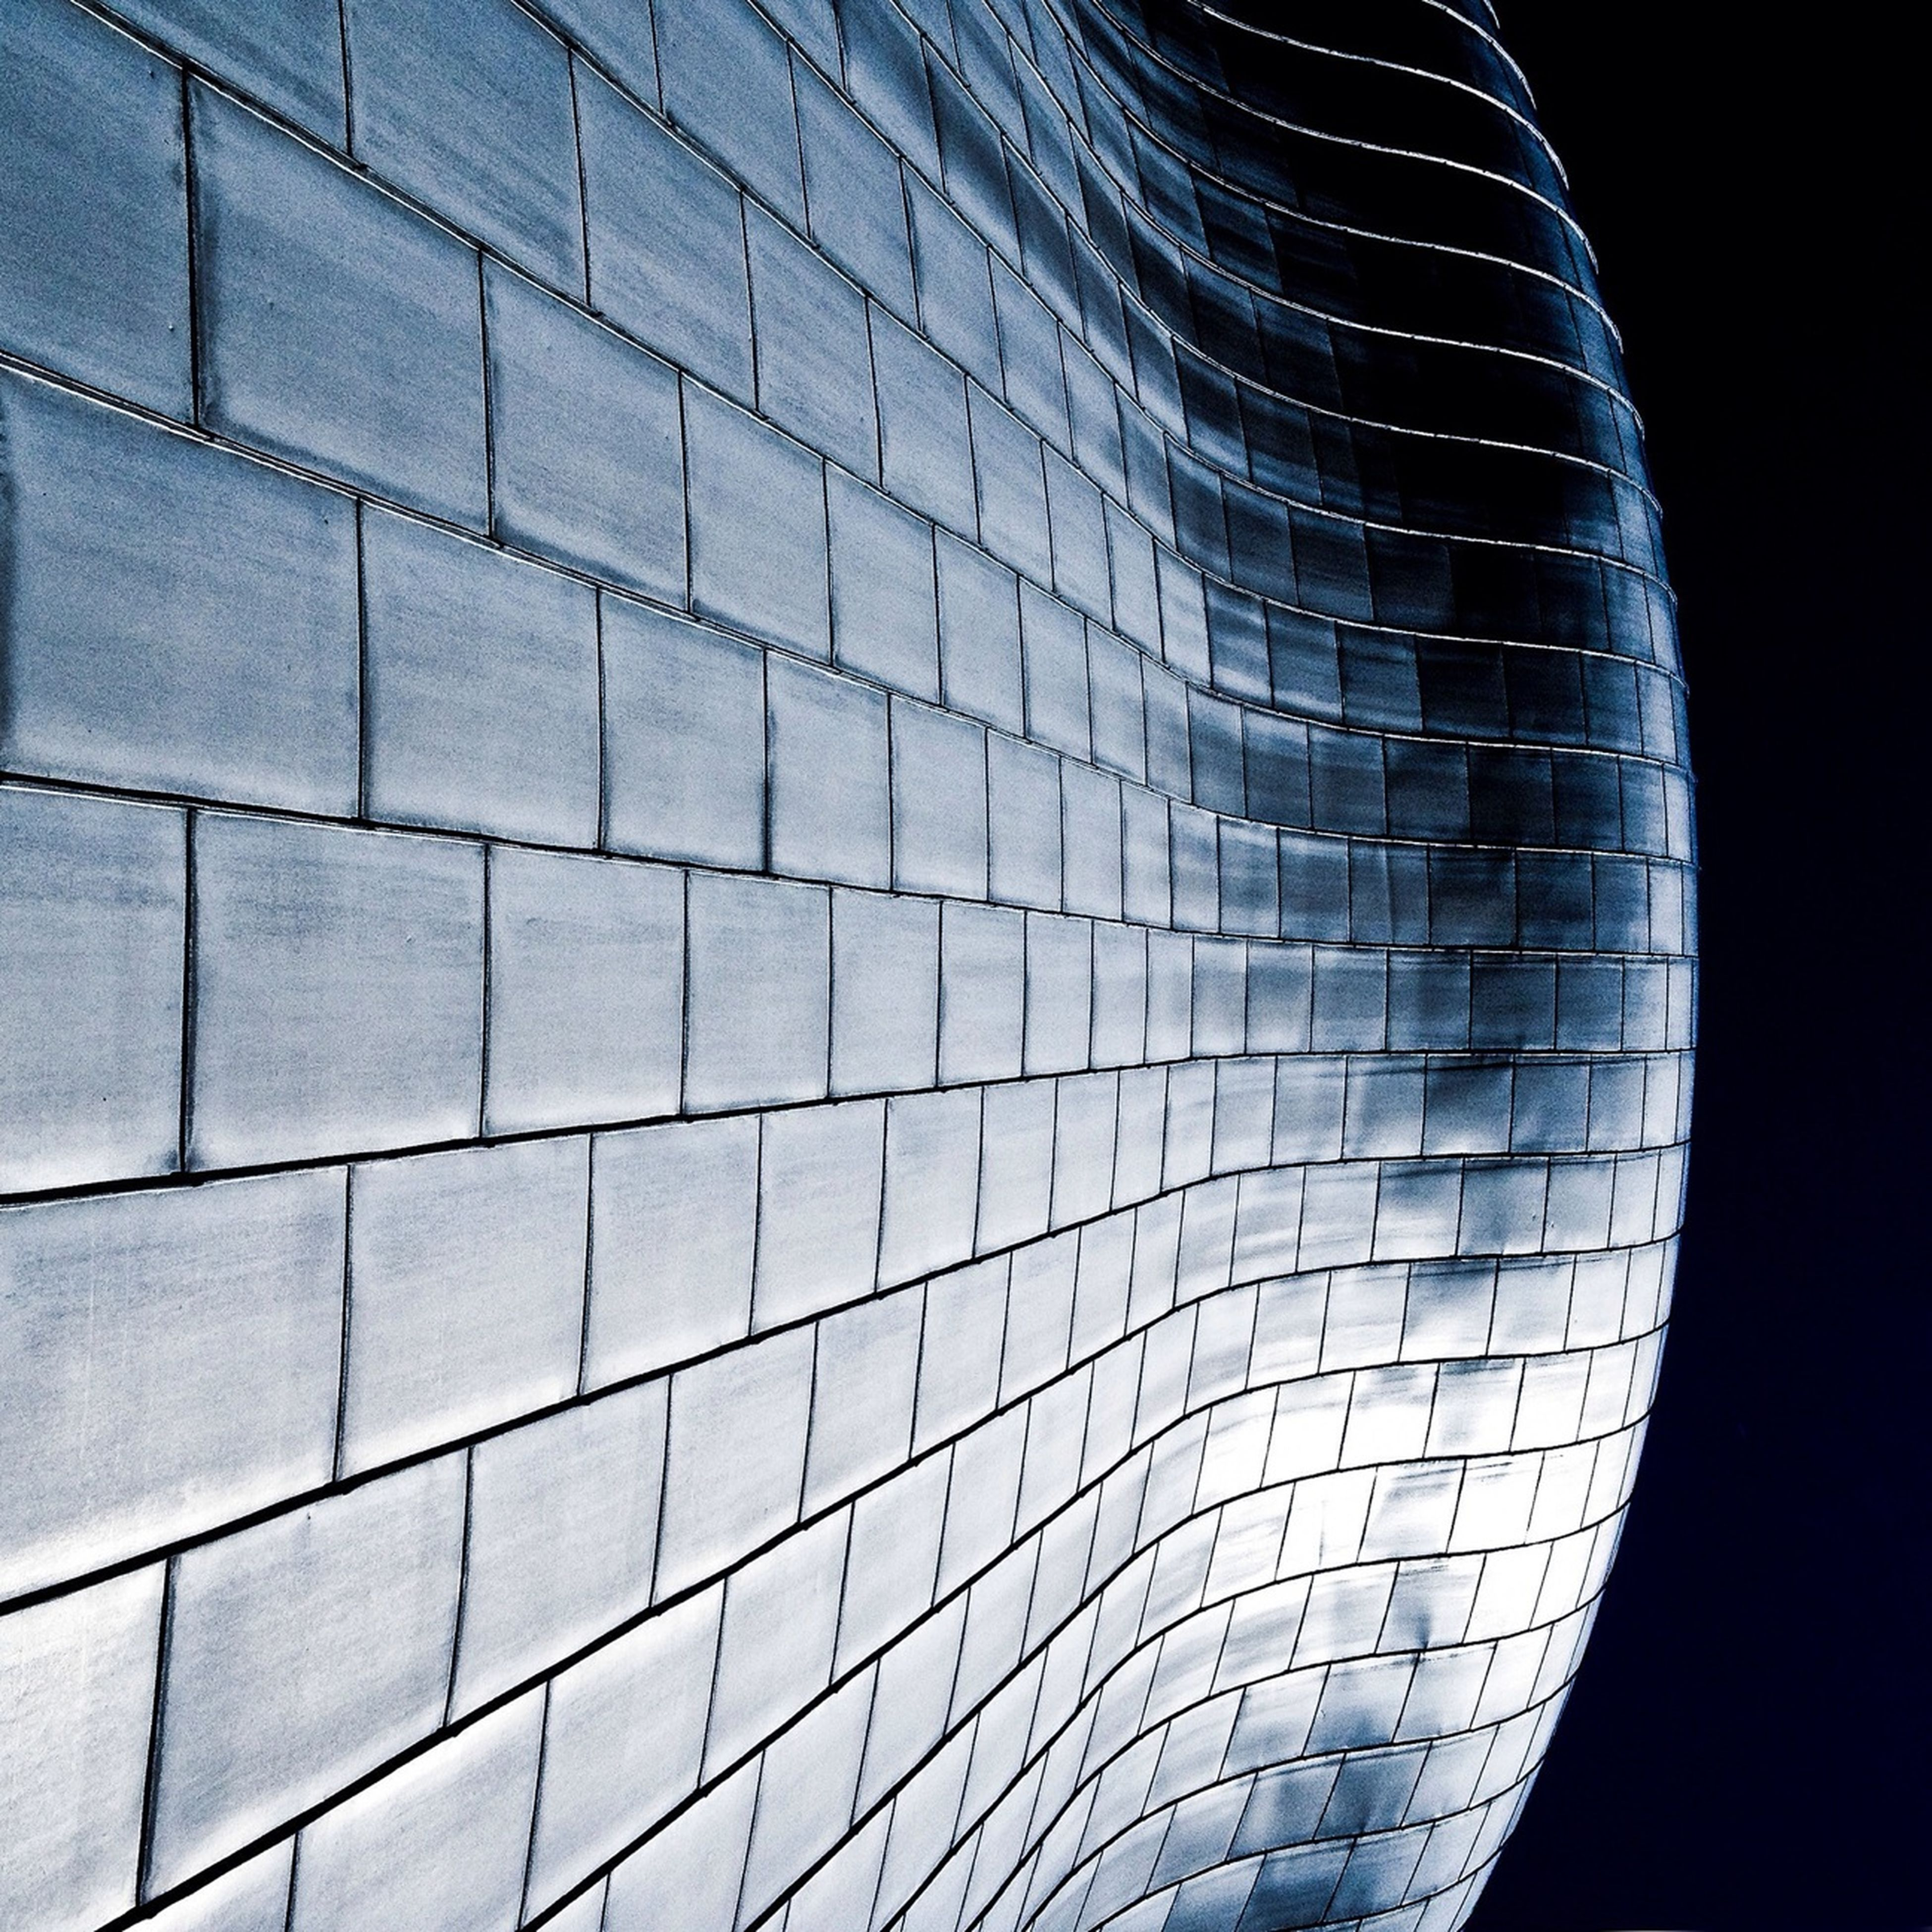 pattern, full frame, backgrounds, design, geometric shape, shape, repetition, textured, close-up, built structure, architecture, abstract, modern, studio shot, no people, circle, detail, wall - building feature, outdoors, in a row